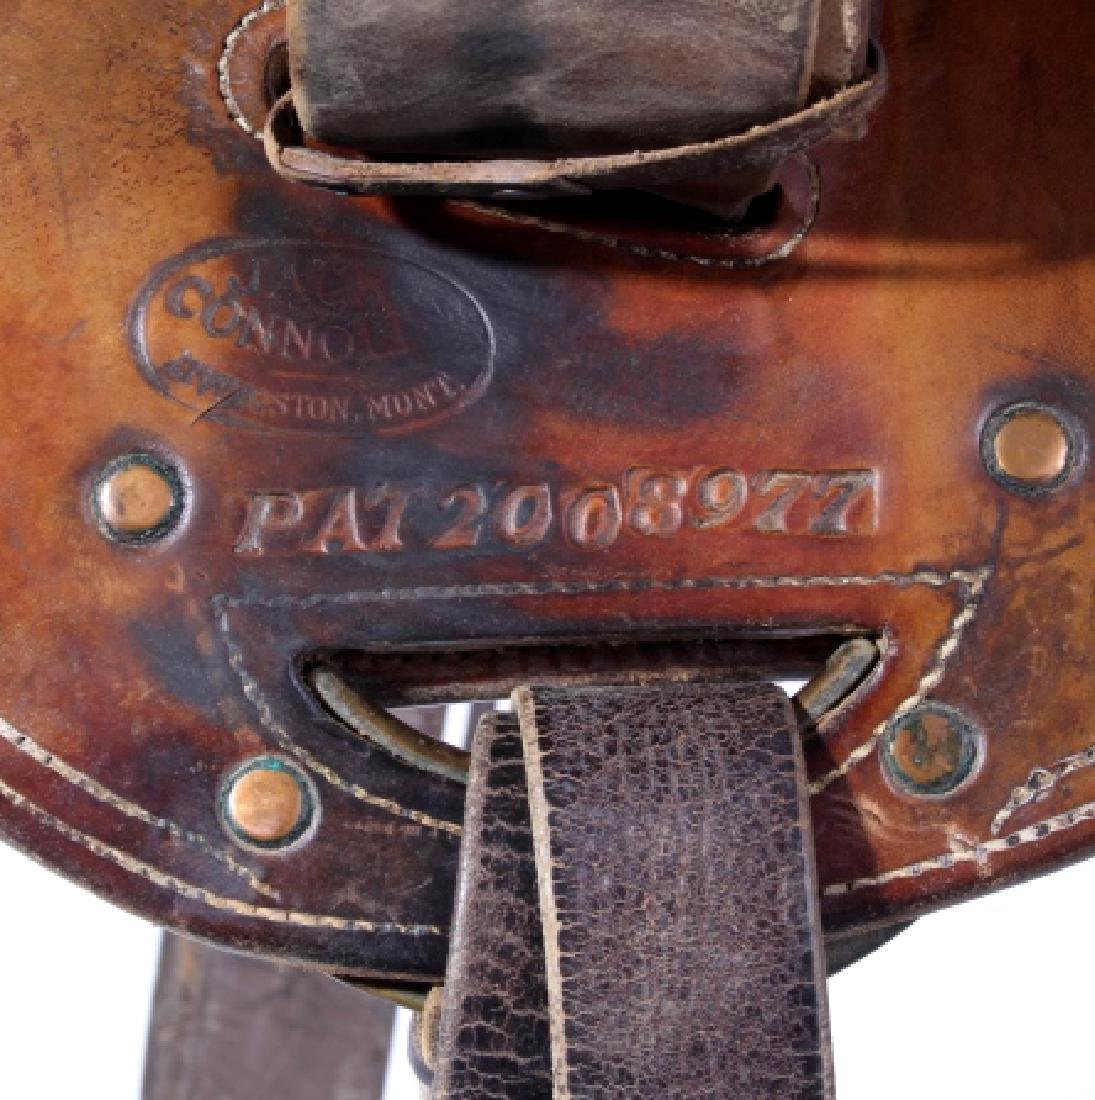 Jack Connolly & Bros Transitional Saddle c.1928-29 - 5